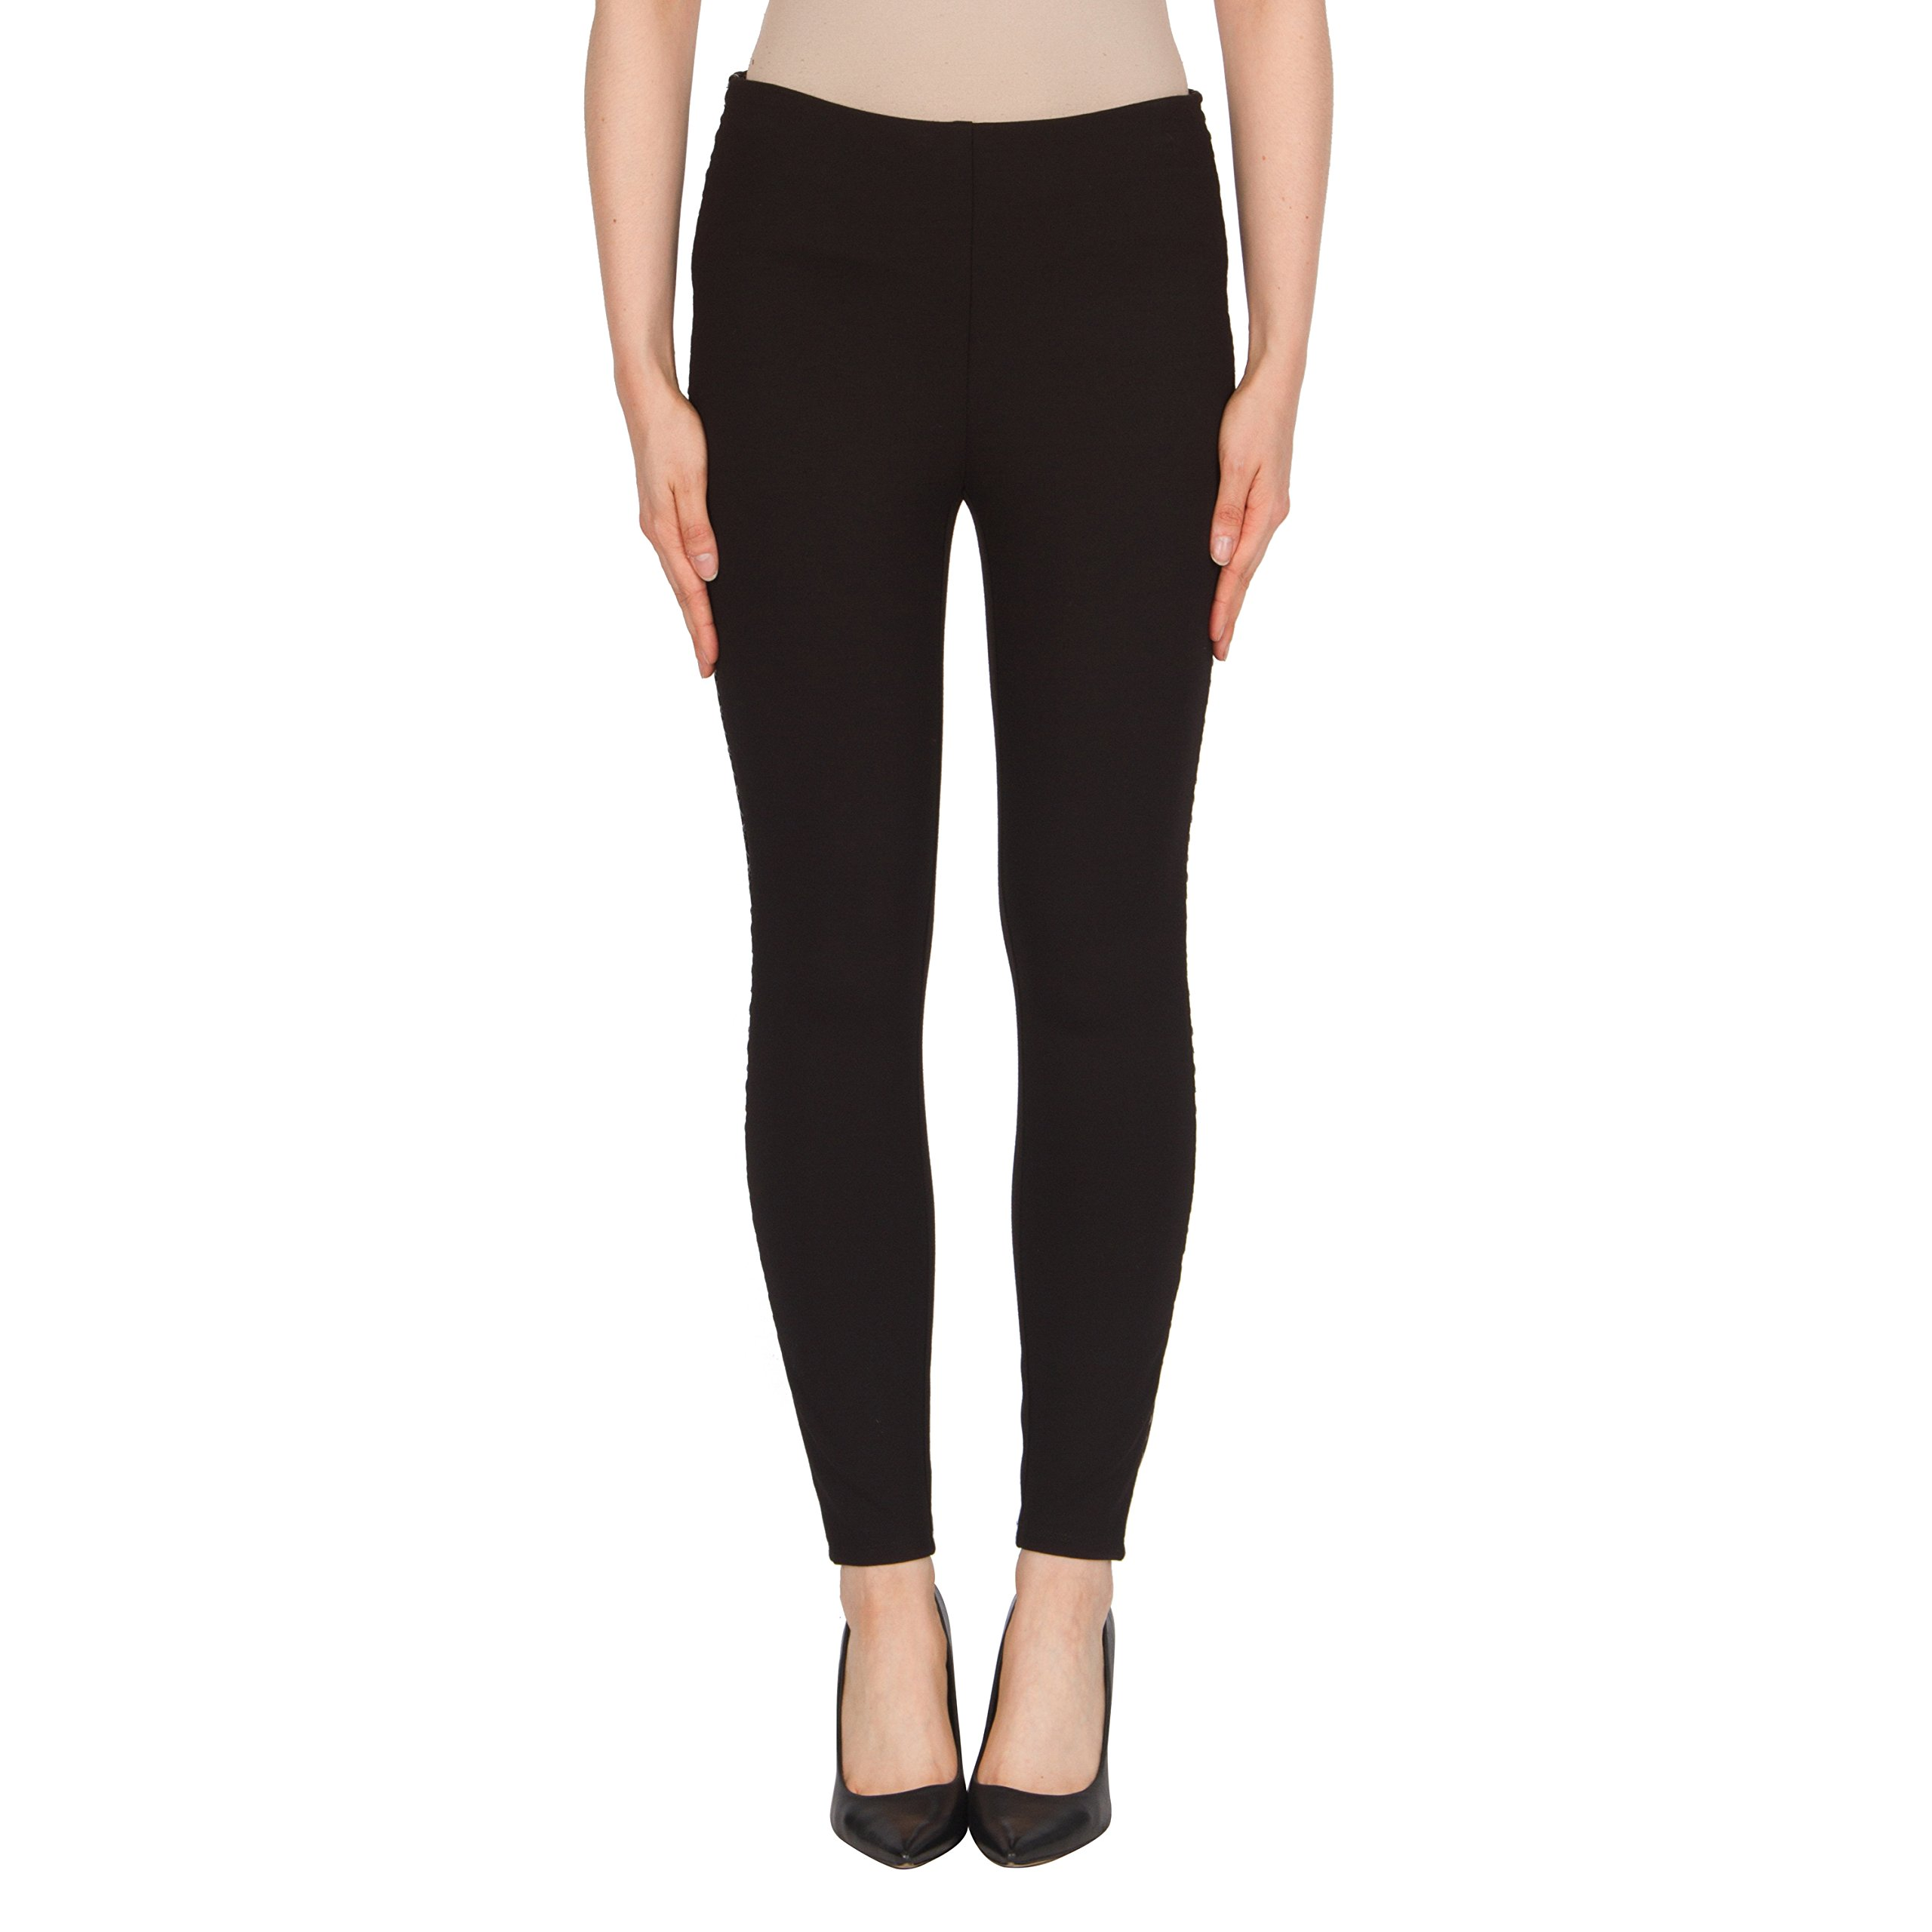 Joseph Ribkoff Black Stretch Legging Pant with Pleather Detail - Style 174305 - Size 14 by Joseph Ribkoff